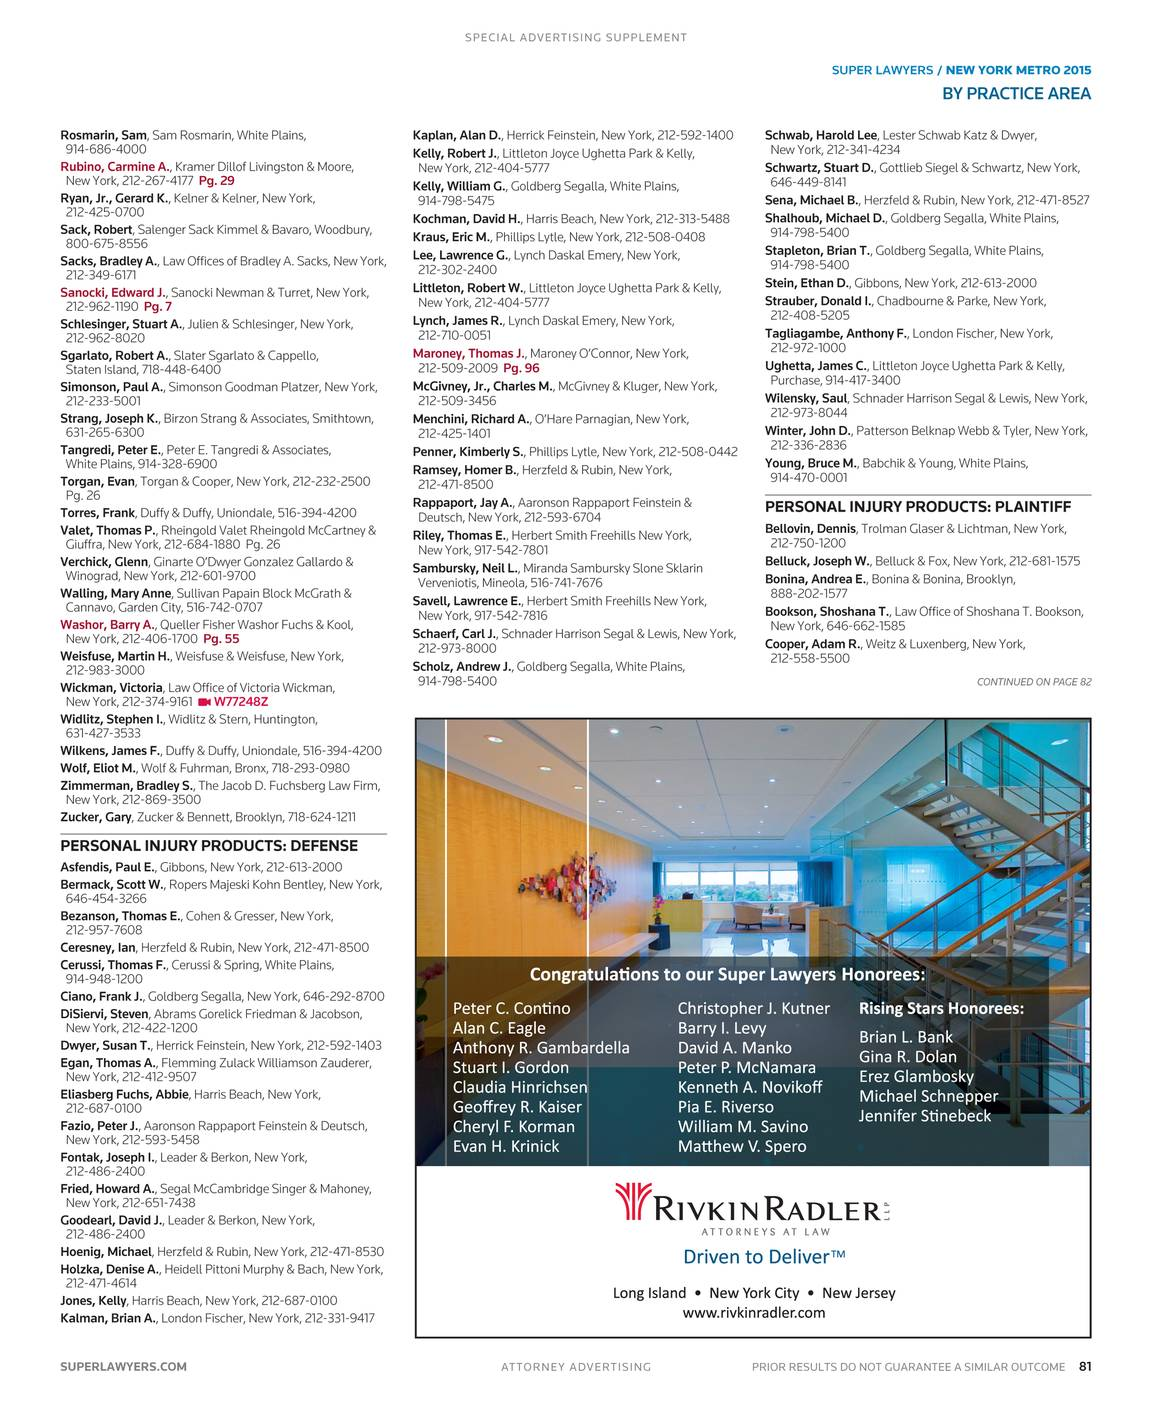 Super Lawyers - New York Metro 2015 Supplement - page 82